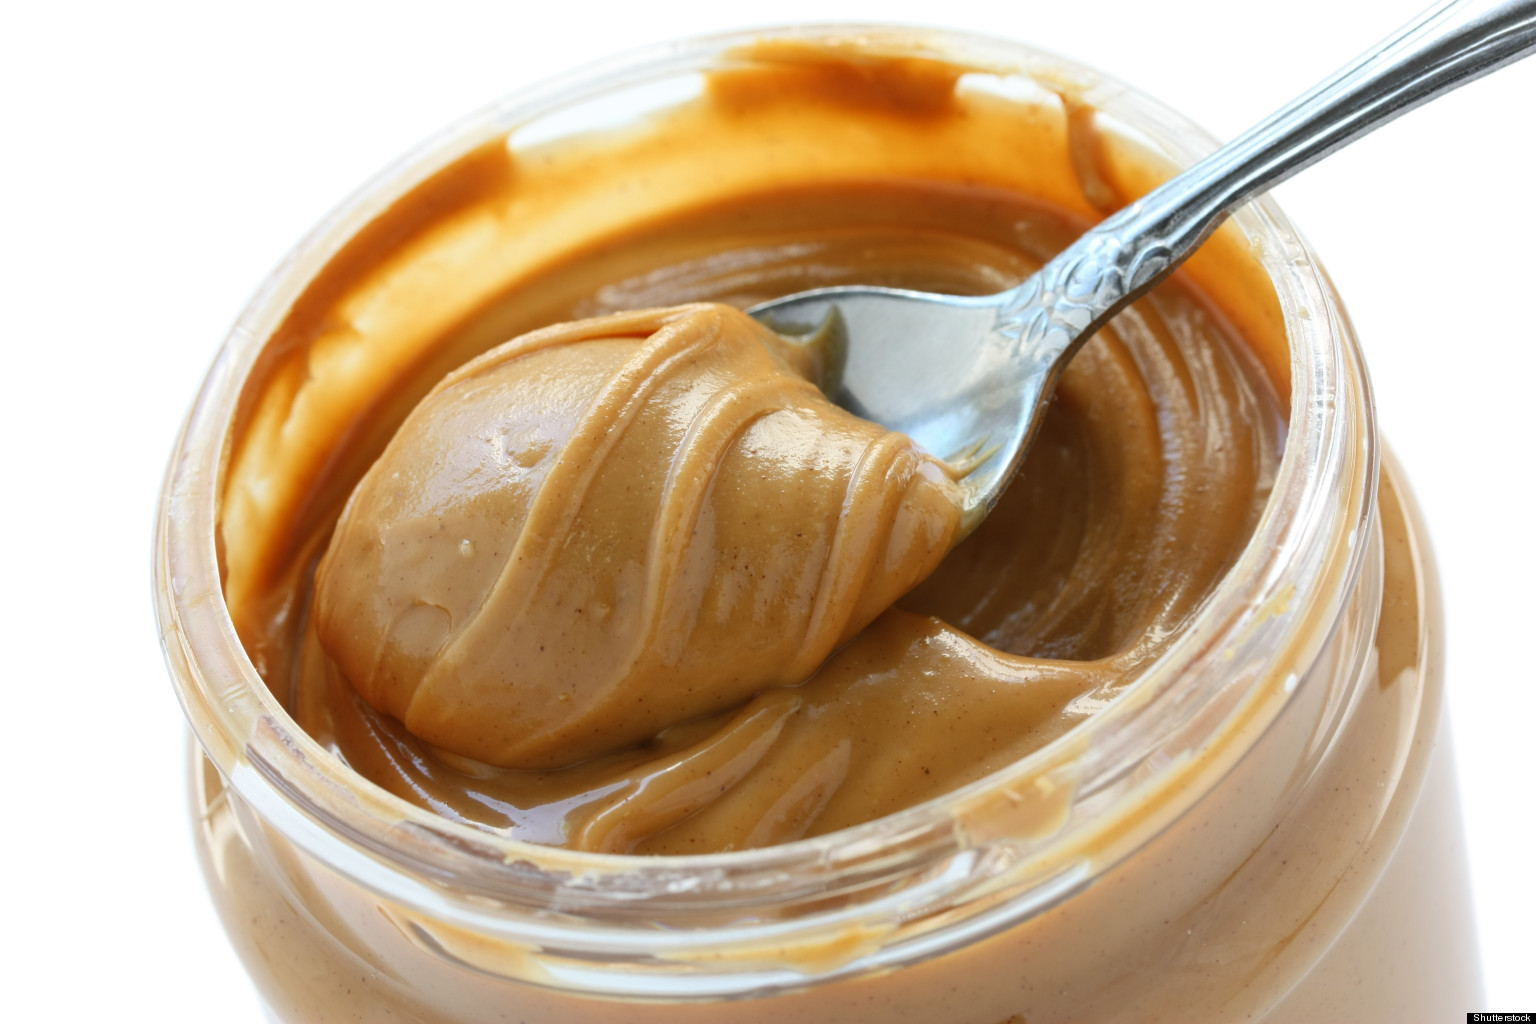 Peanut Butter to Medicate Dogs